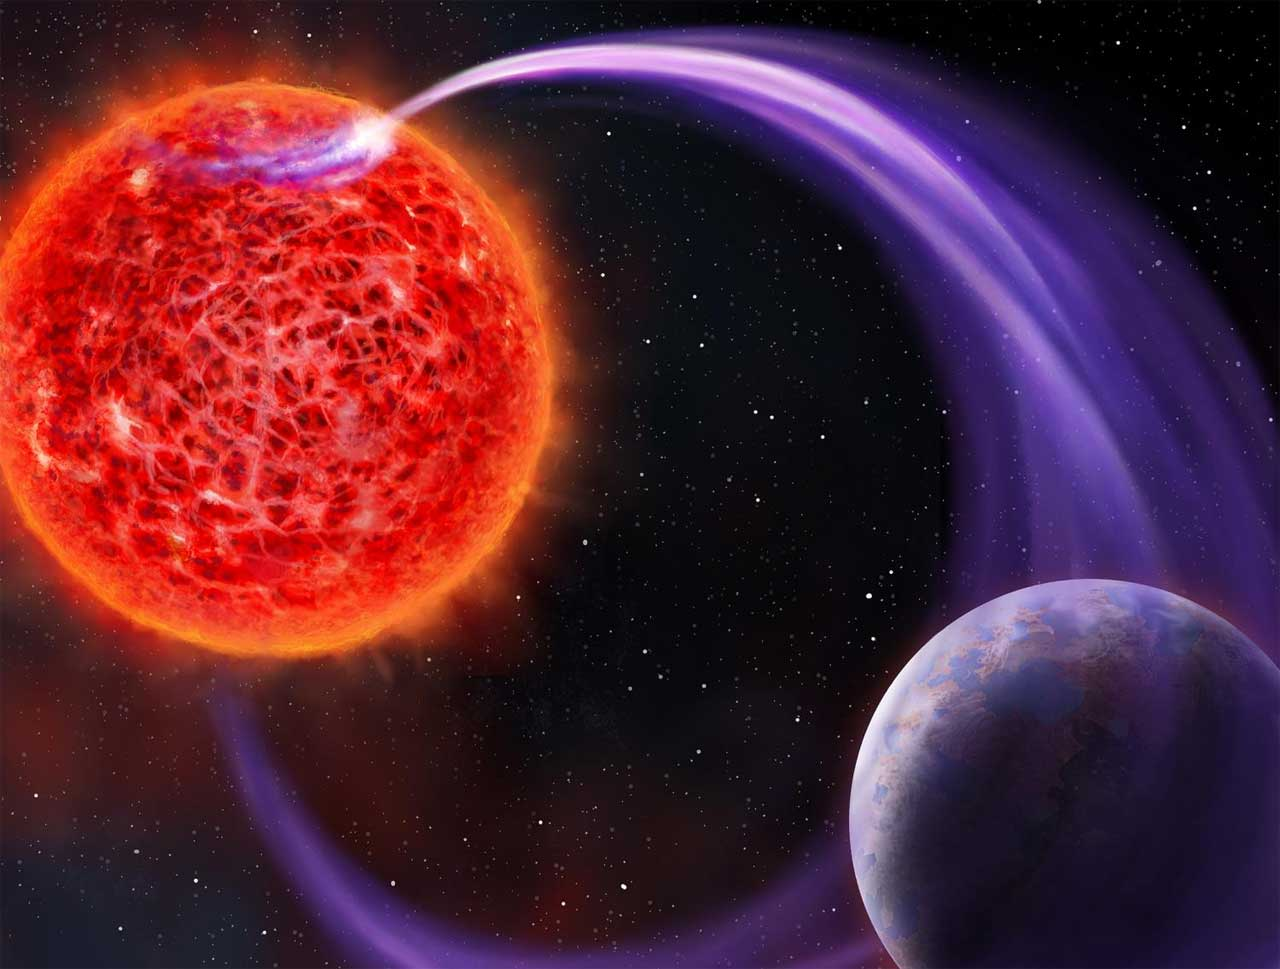 LOFAR telescope gives scientists a new way to study exoplanets